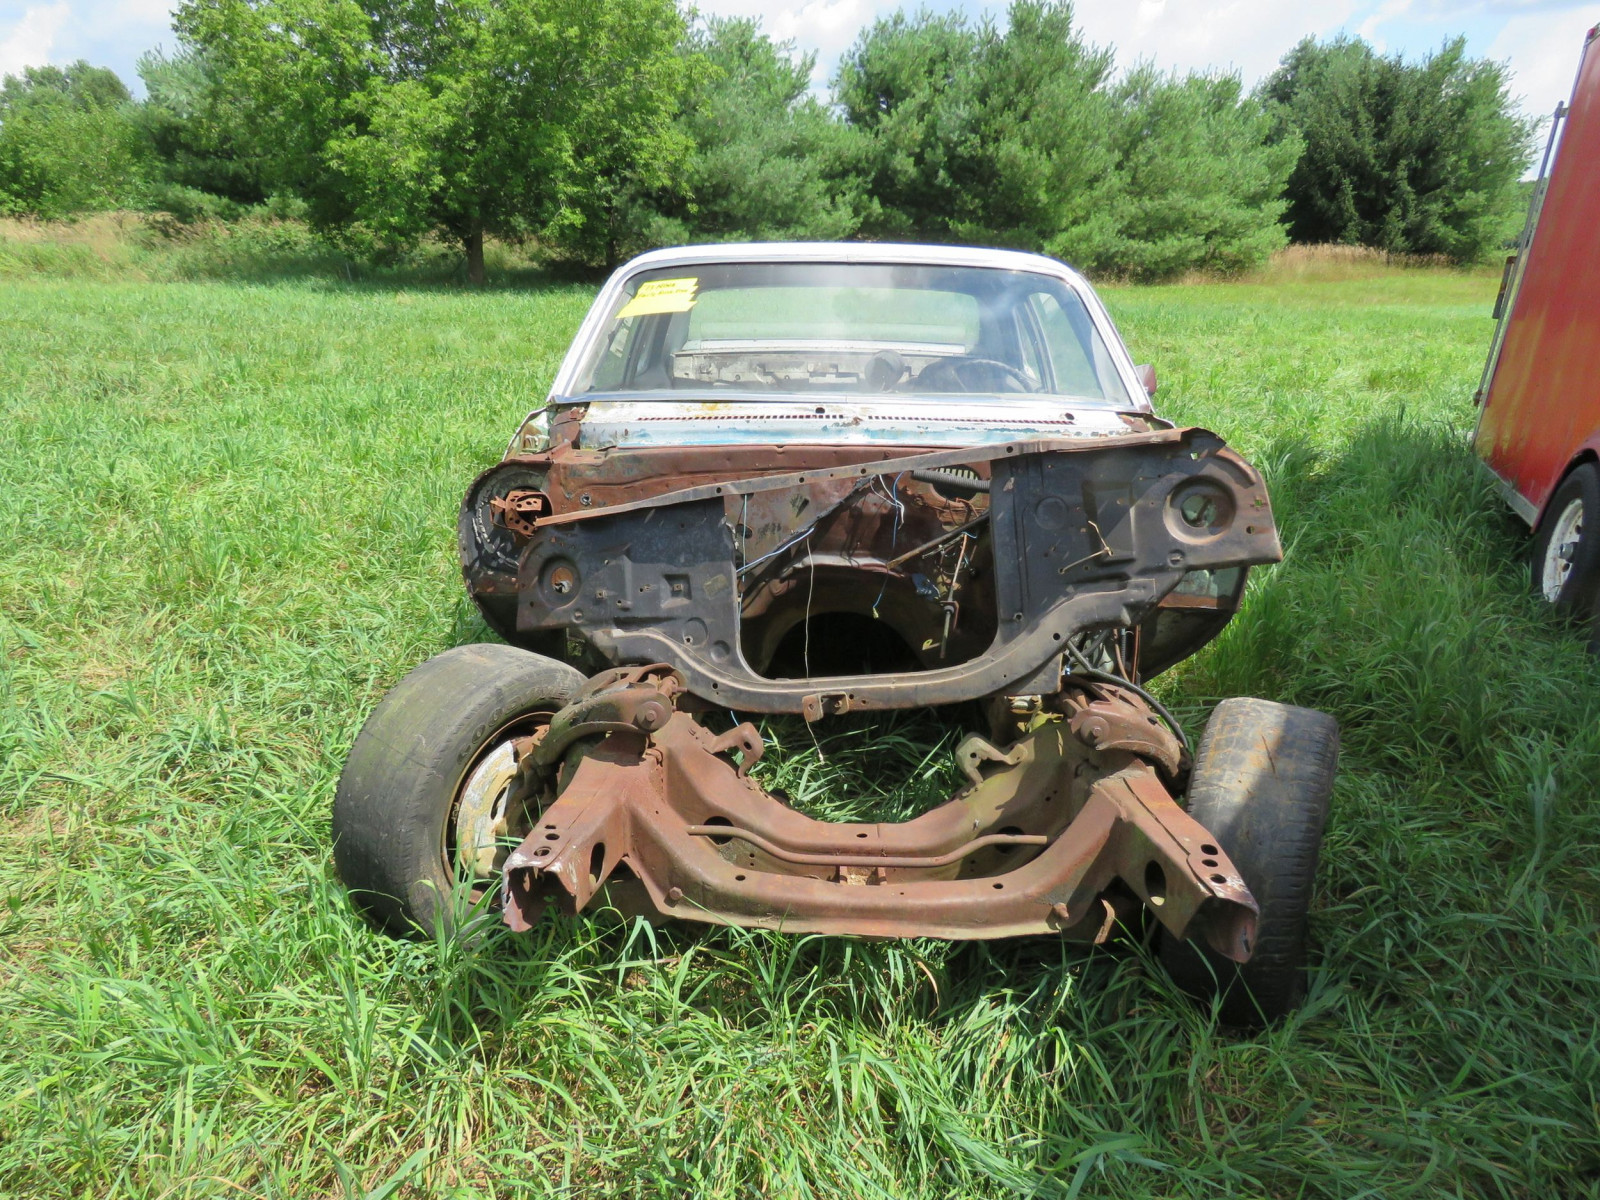 1973 Chevrolet Nova Body for Restore or Parts - Image 2